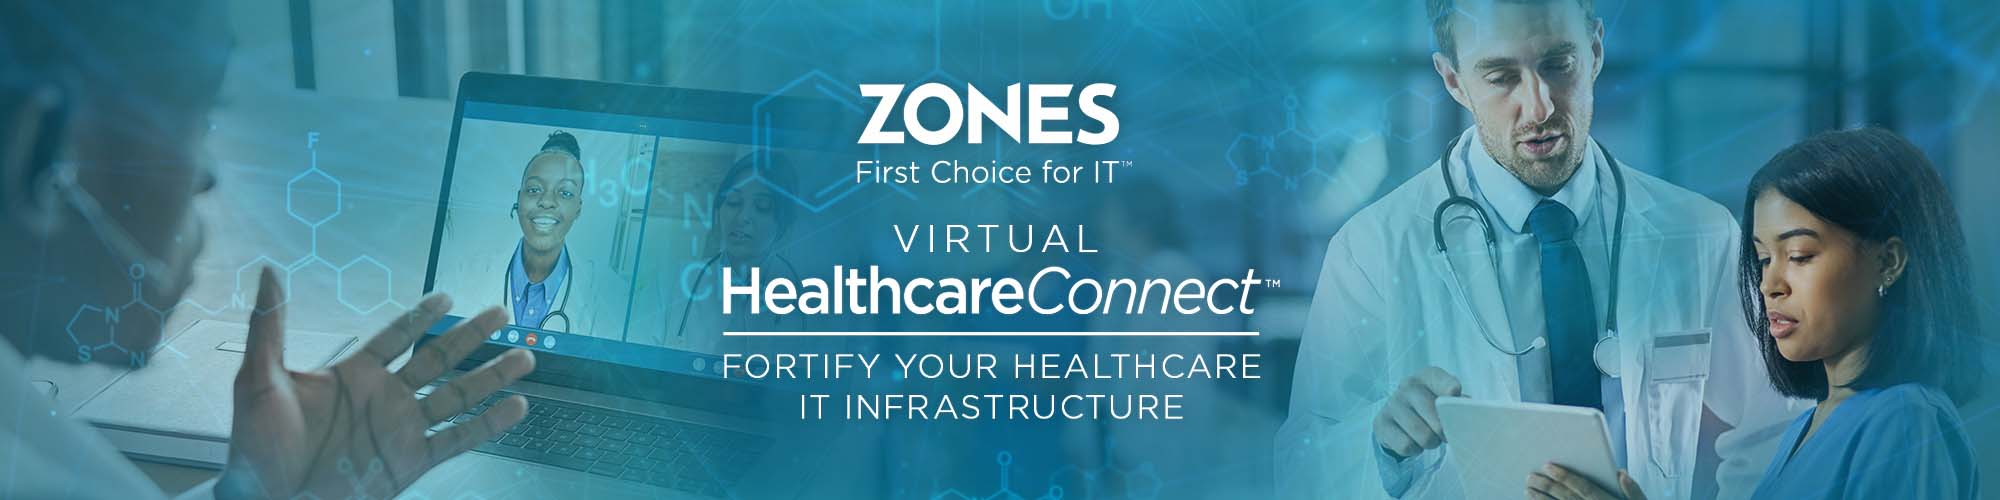 Zones HealthcareConnect: Virtual Conference September 16, 2021 - Fortify Your Healthcare IT Infrastructure